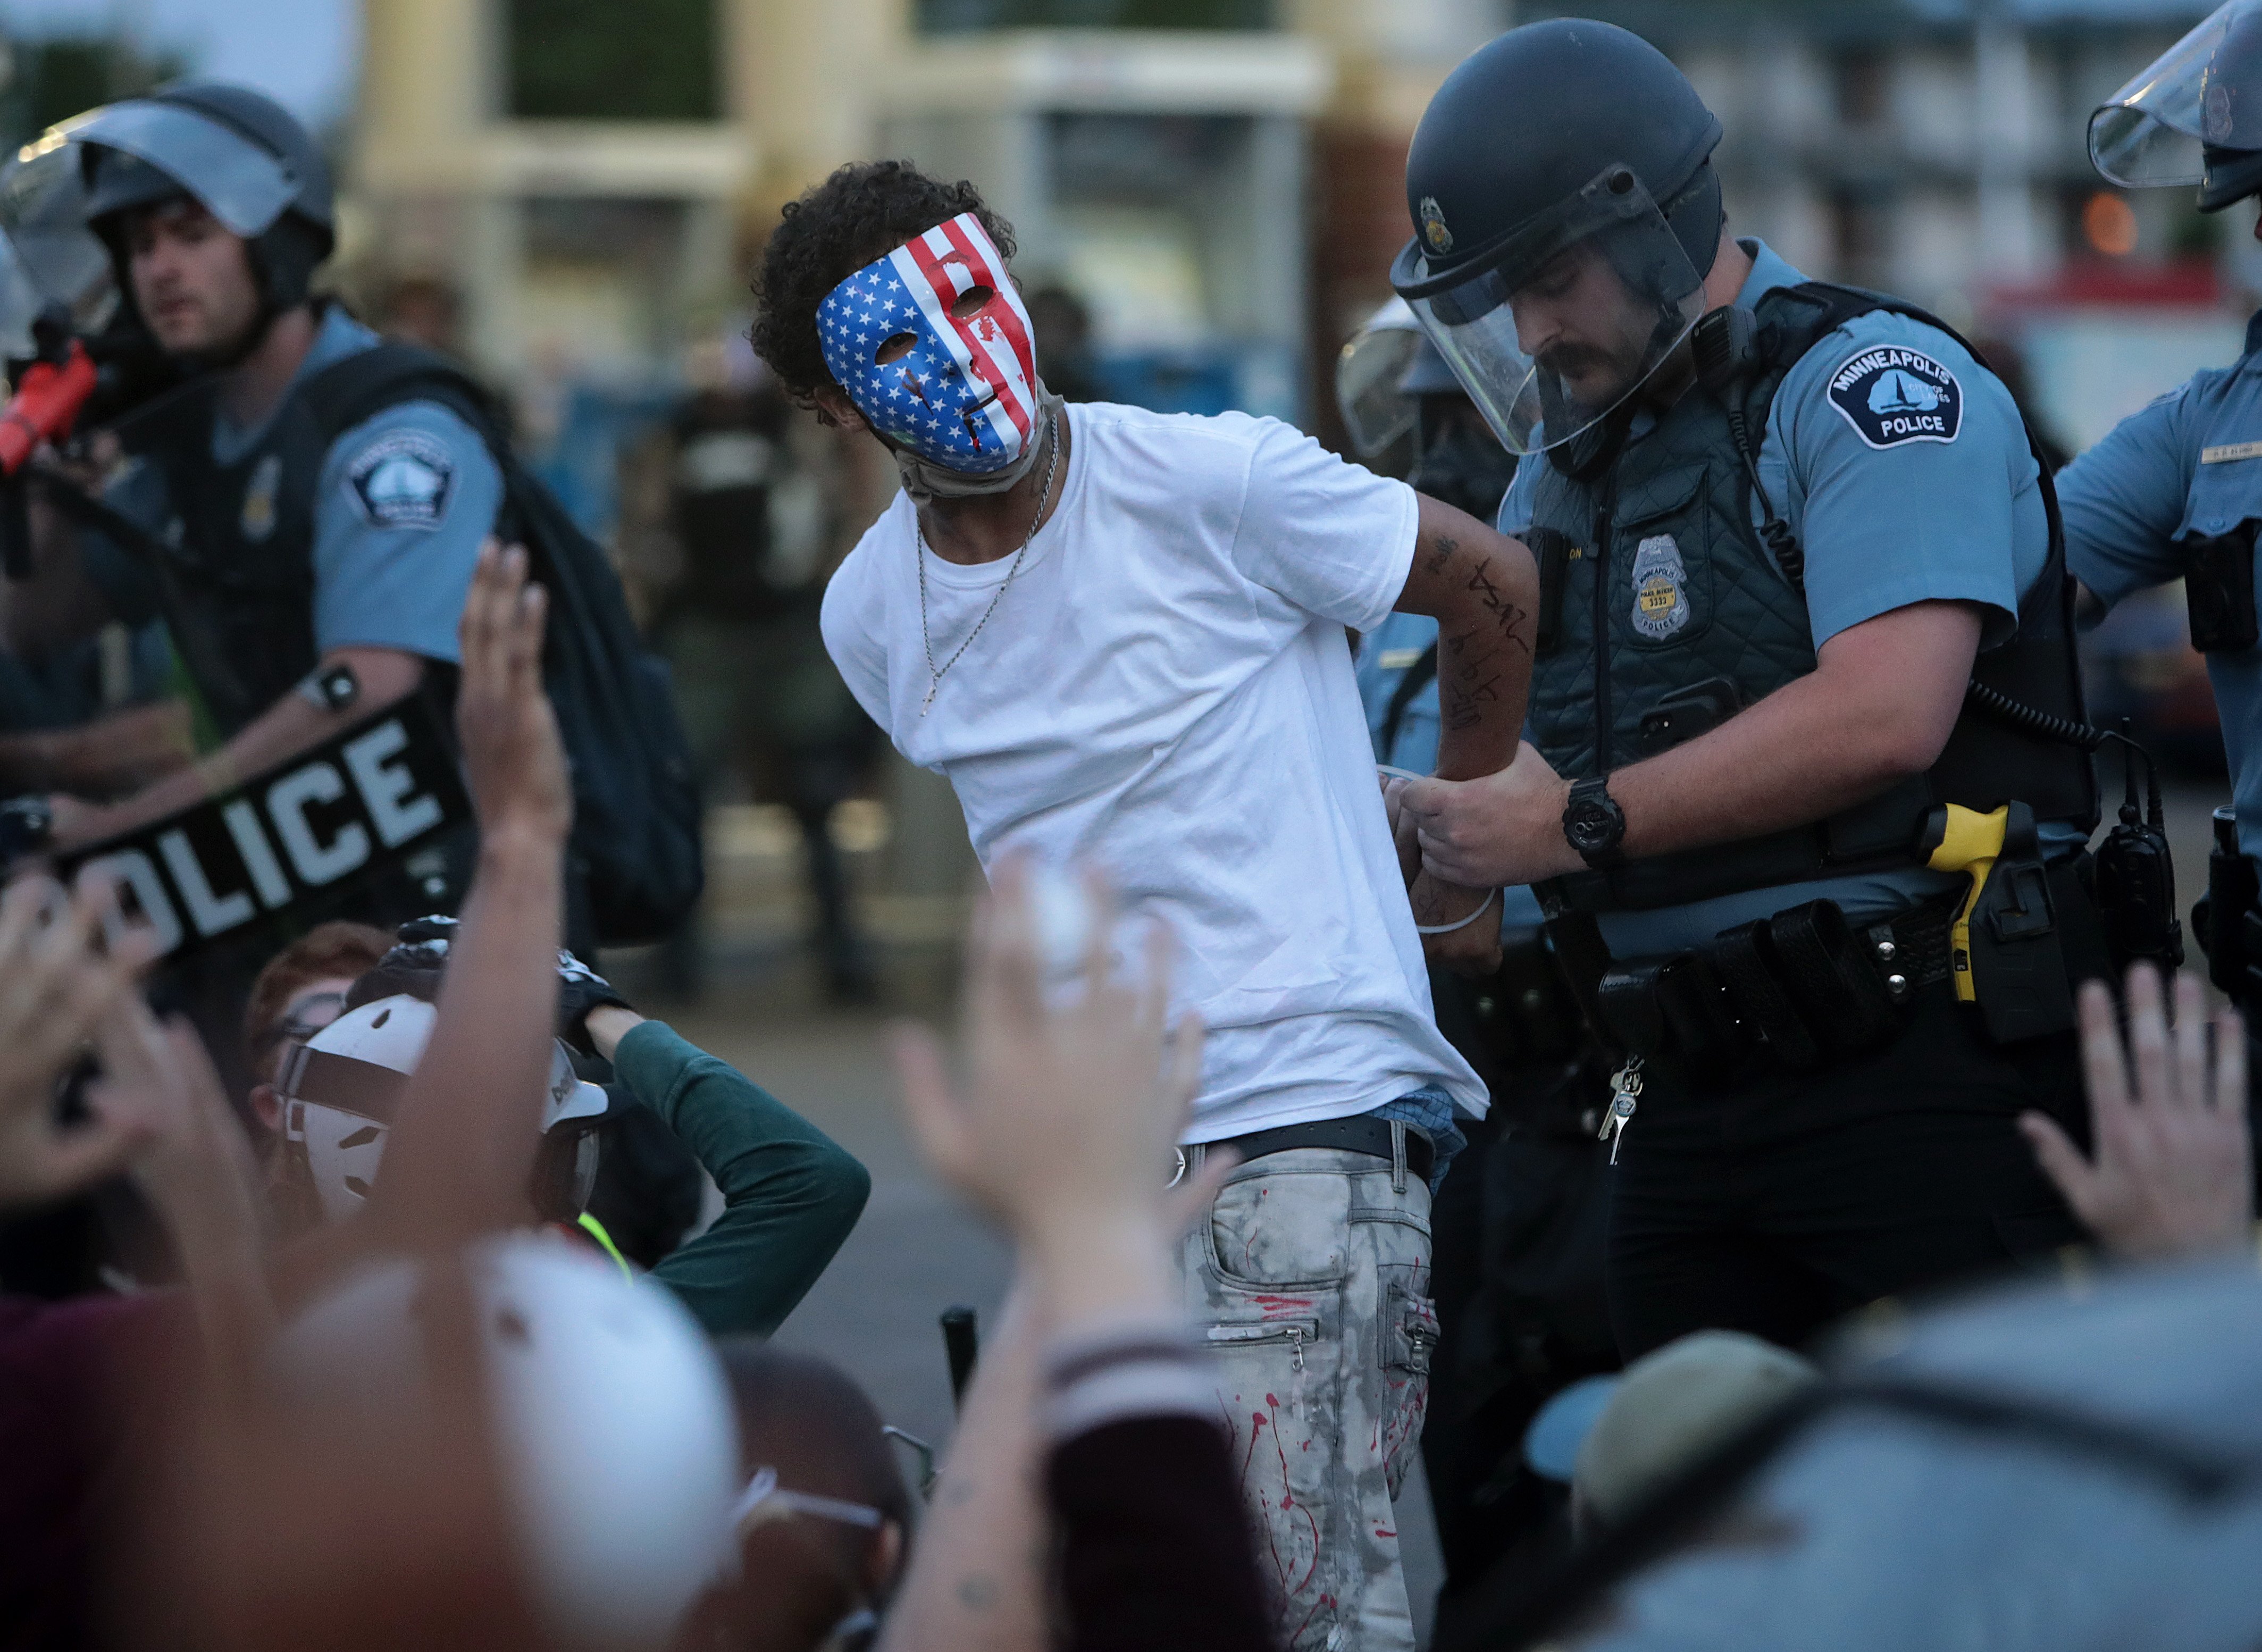 A demonstrator is arressted during a protest against police brutality and the death of George Floyd, on May 31, 2020 in Minneapolis, Minnesota.